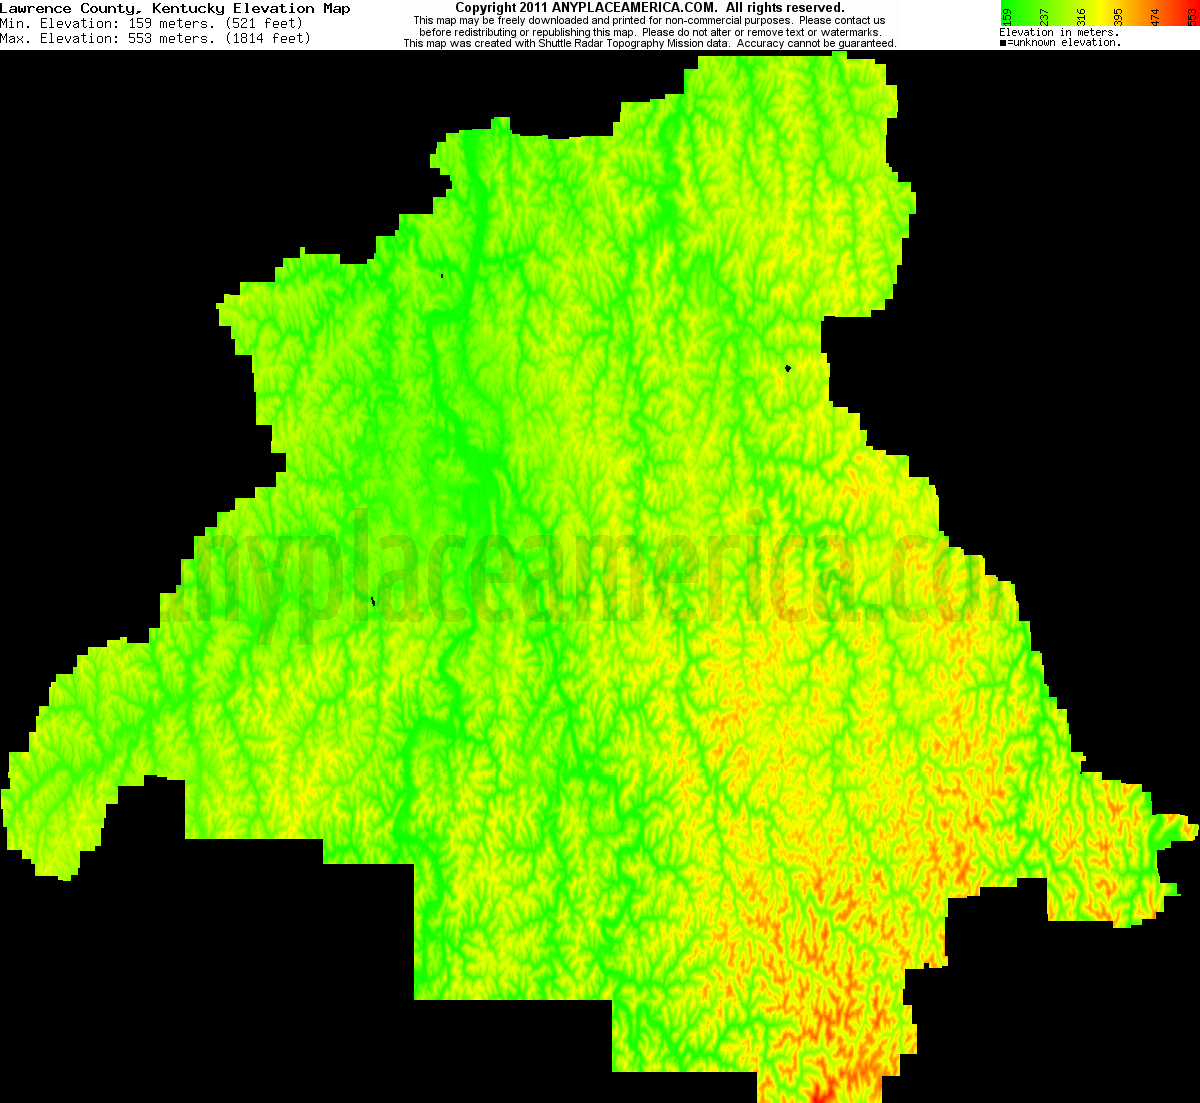 Download Lawrence County Elevation Map